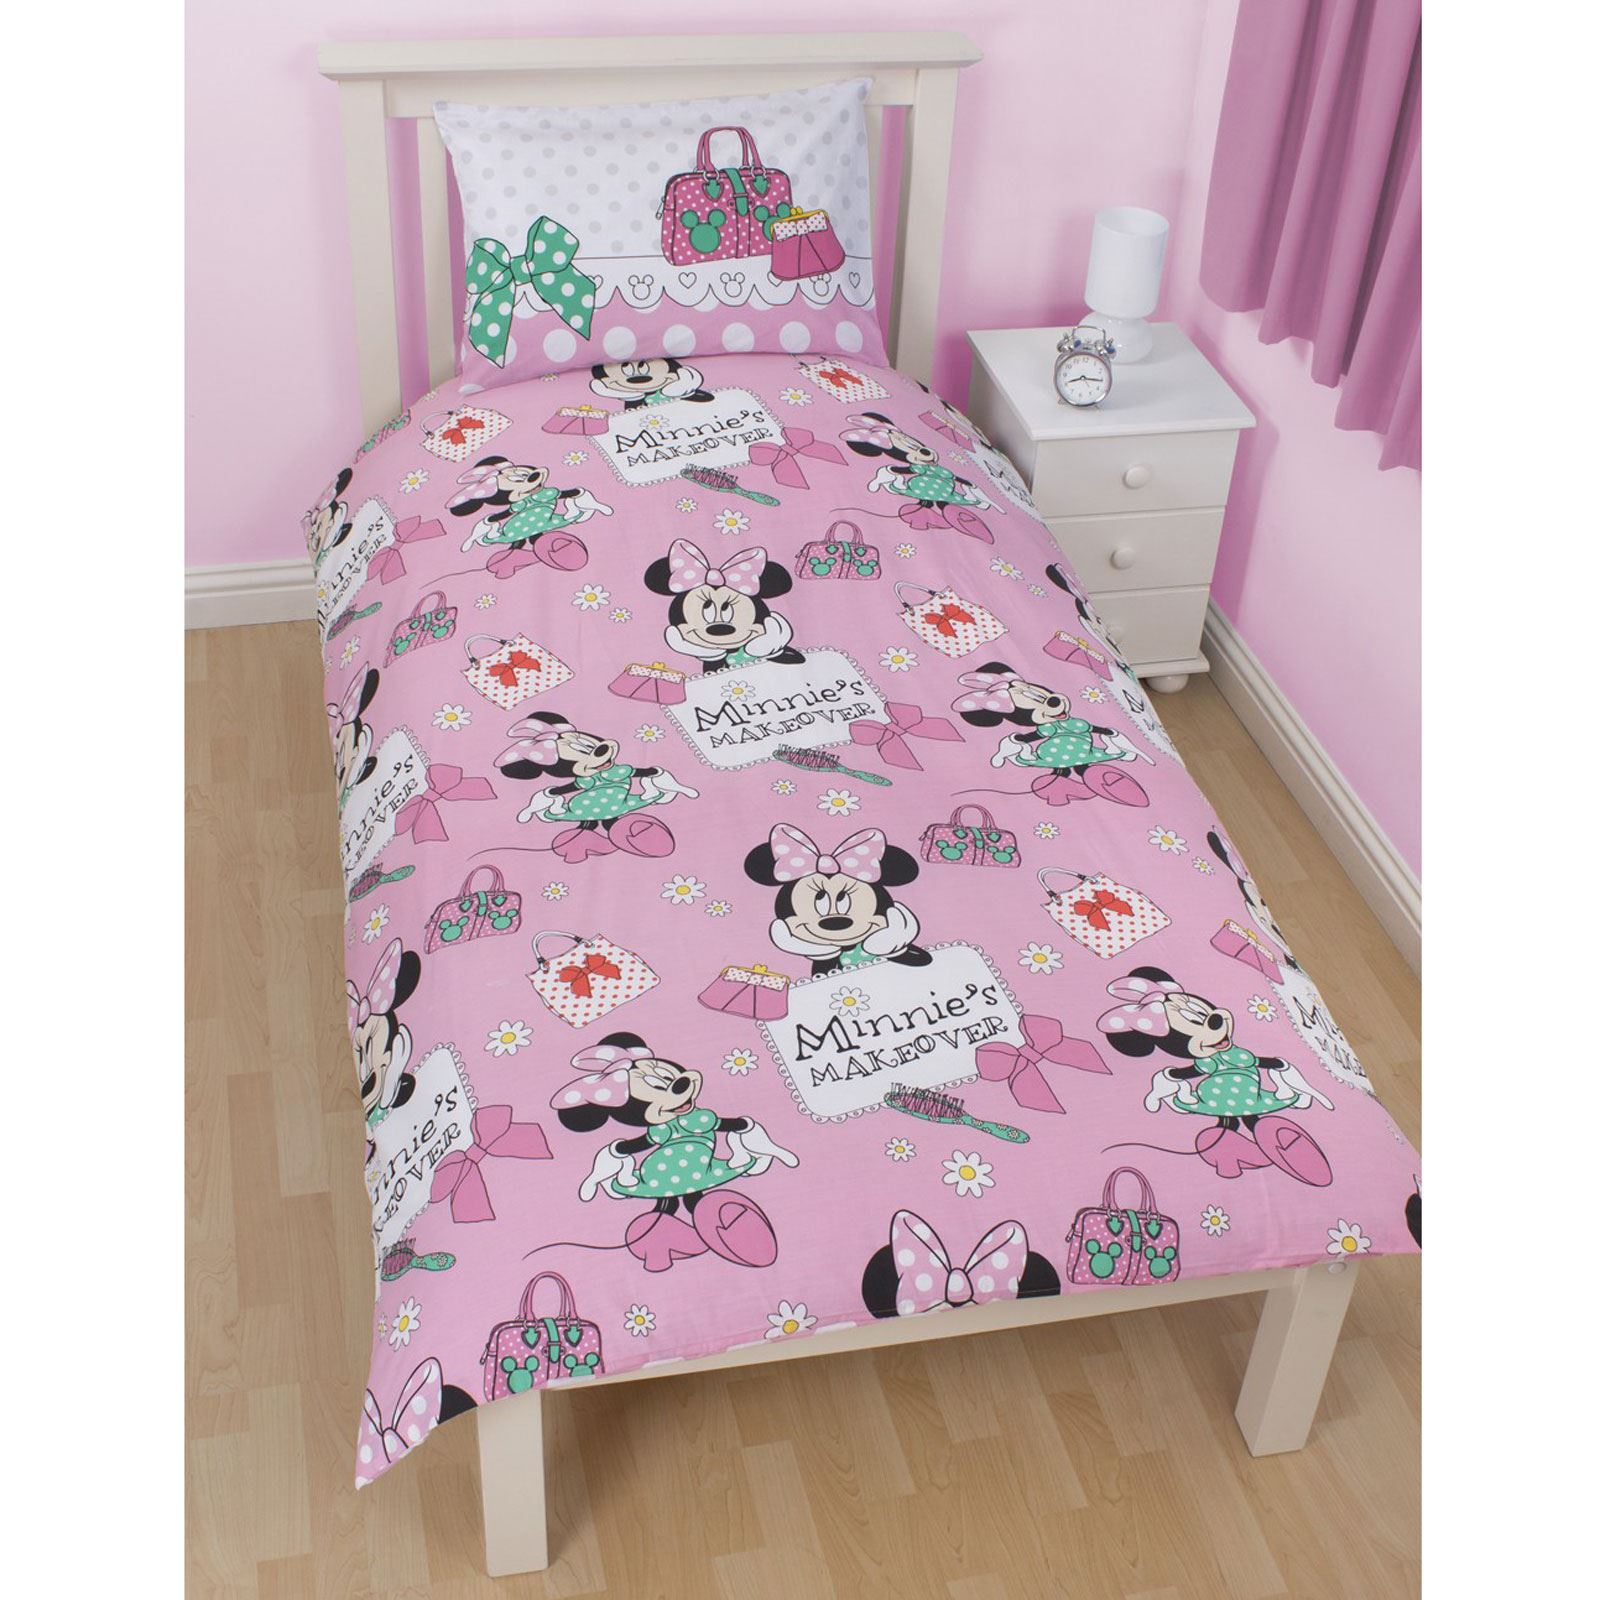 MINNIE-MOUSE-DUVET-COVERS-KIDS-GIRLS-BEDDING-SINGLE-DOUBLE-JUNIOR thumbnail 26